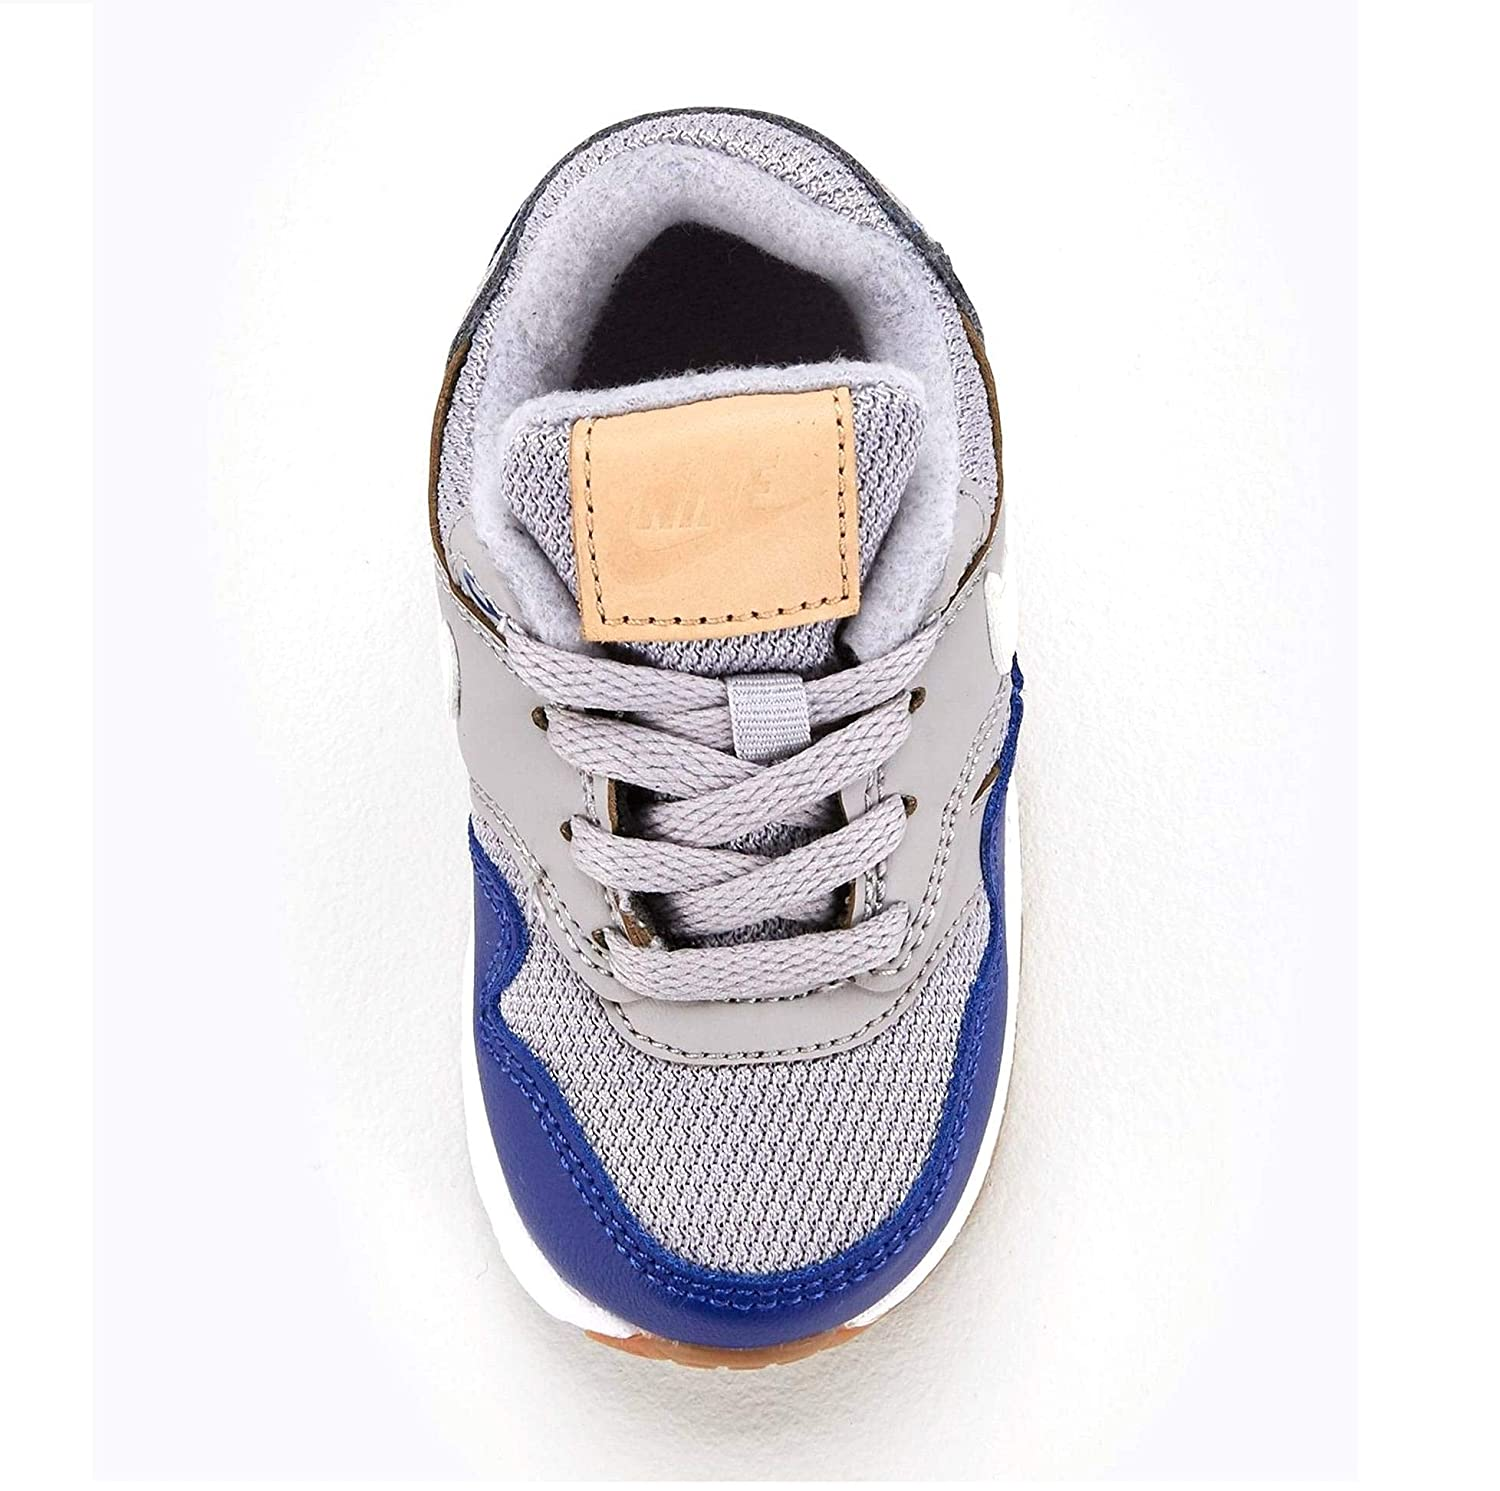 a7aab89b15 NIKE Unisex Kids' Air Max 1 (td) Fitness Shoes, Multicolour (Atmosphere Grey /Sail/Deep Royal Blue 010), 9.5 UK: Amazon.co.uk: Shoes & Bags